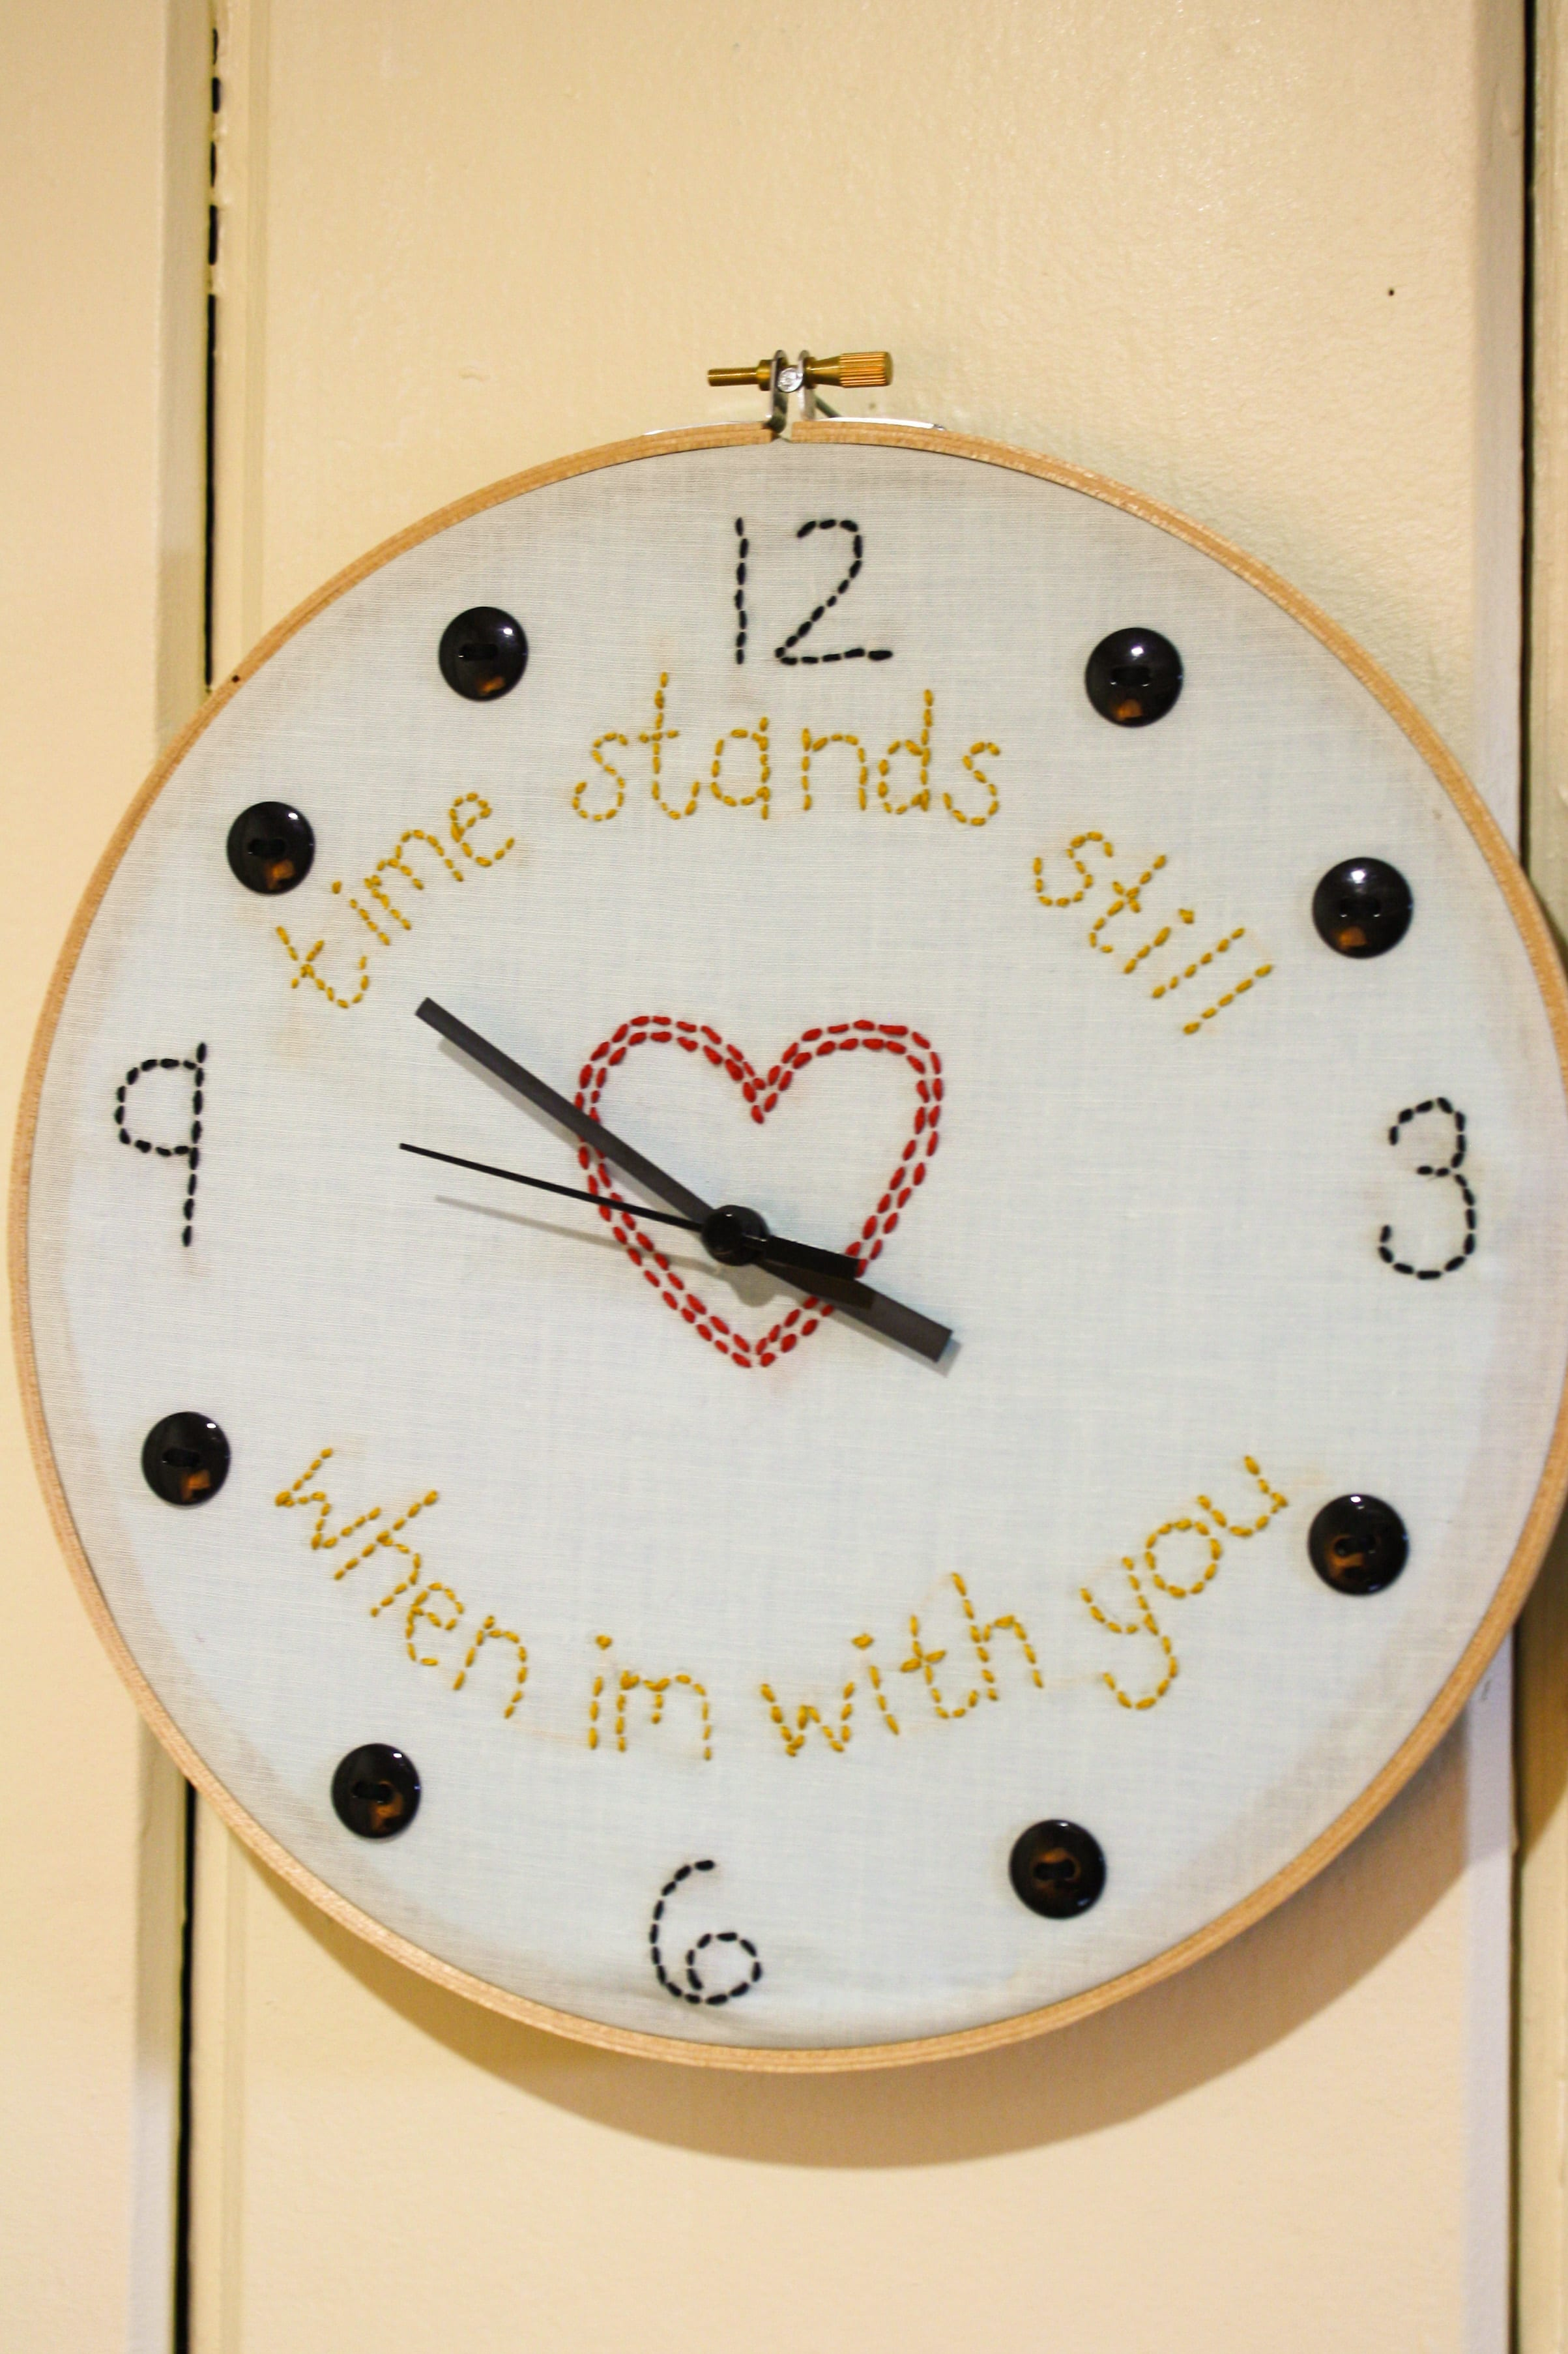 How to make an embroidery hoop clock build it